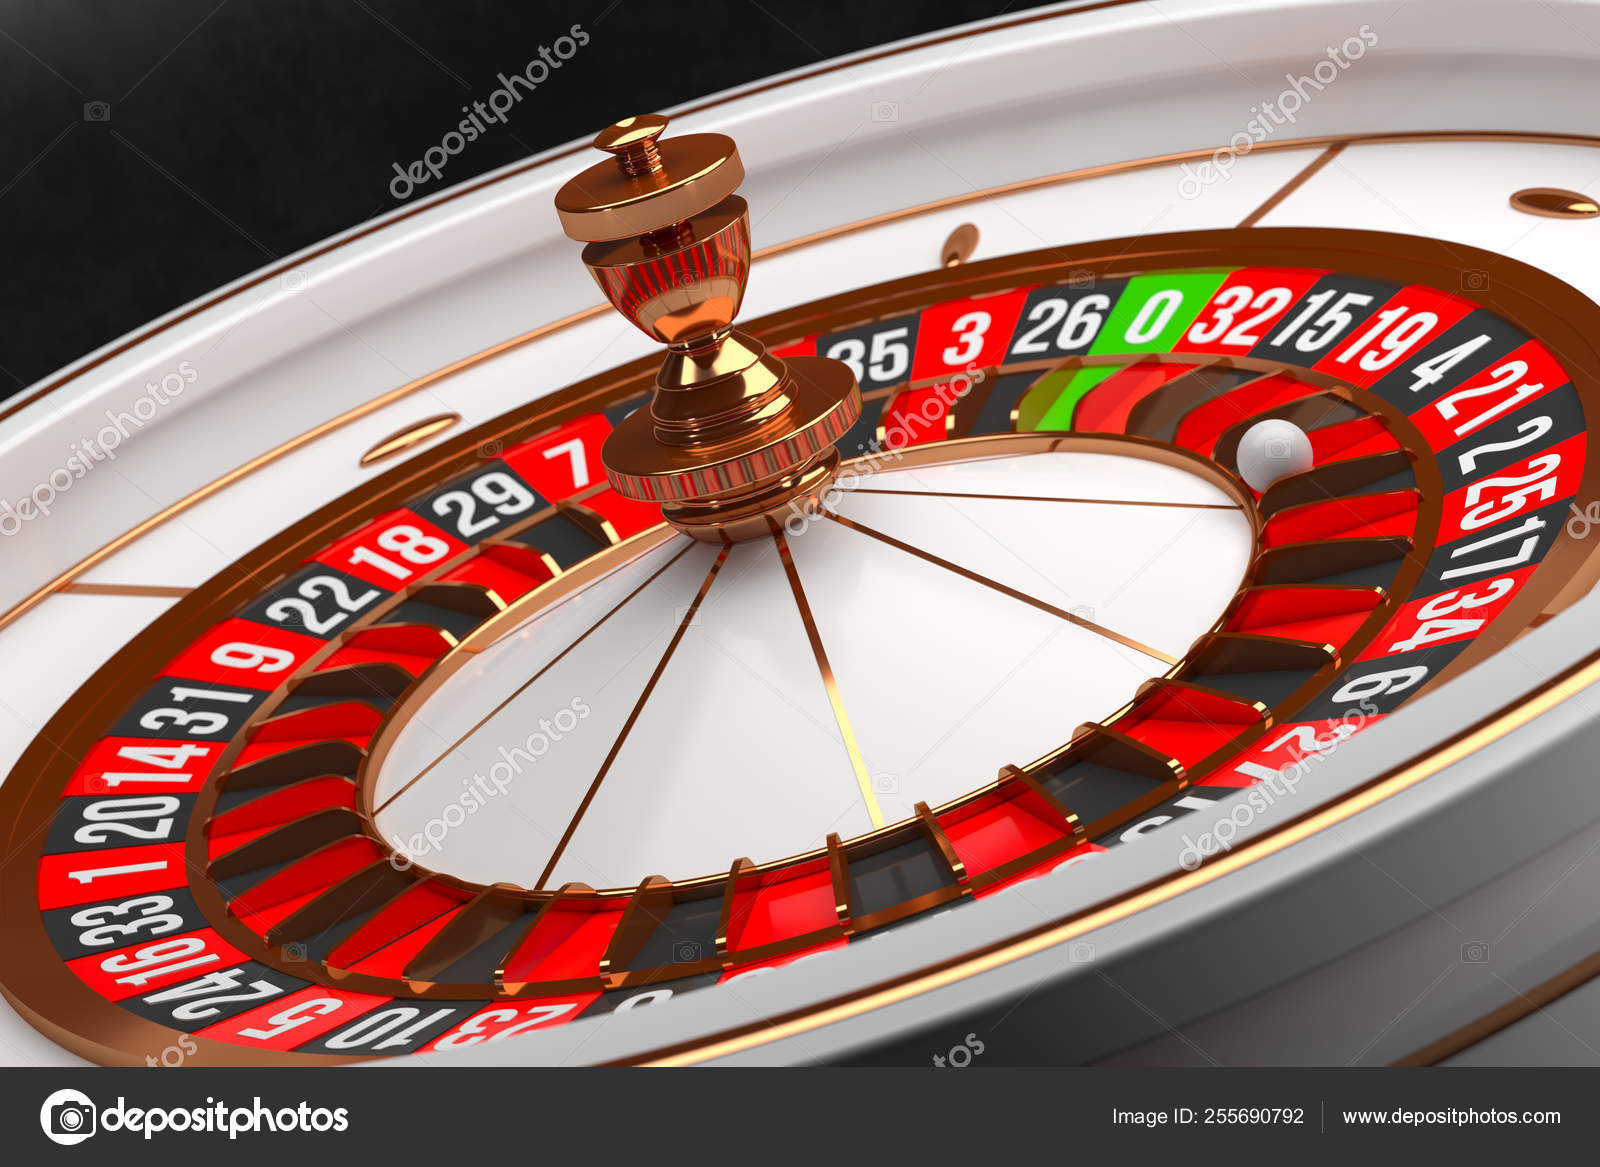 Luxury Casino Roulette Wheel On Black Background Casino Theme Close Up White Casino Roulette With A Ball On Zero Poker Game Table 3d Rendering Illustration Stock Photo C Volmon Tut By 255690792